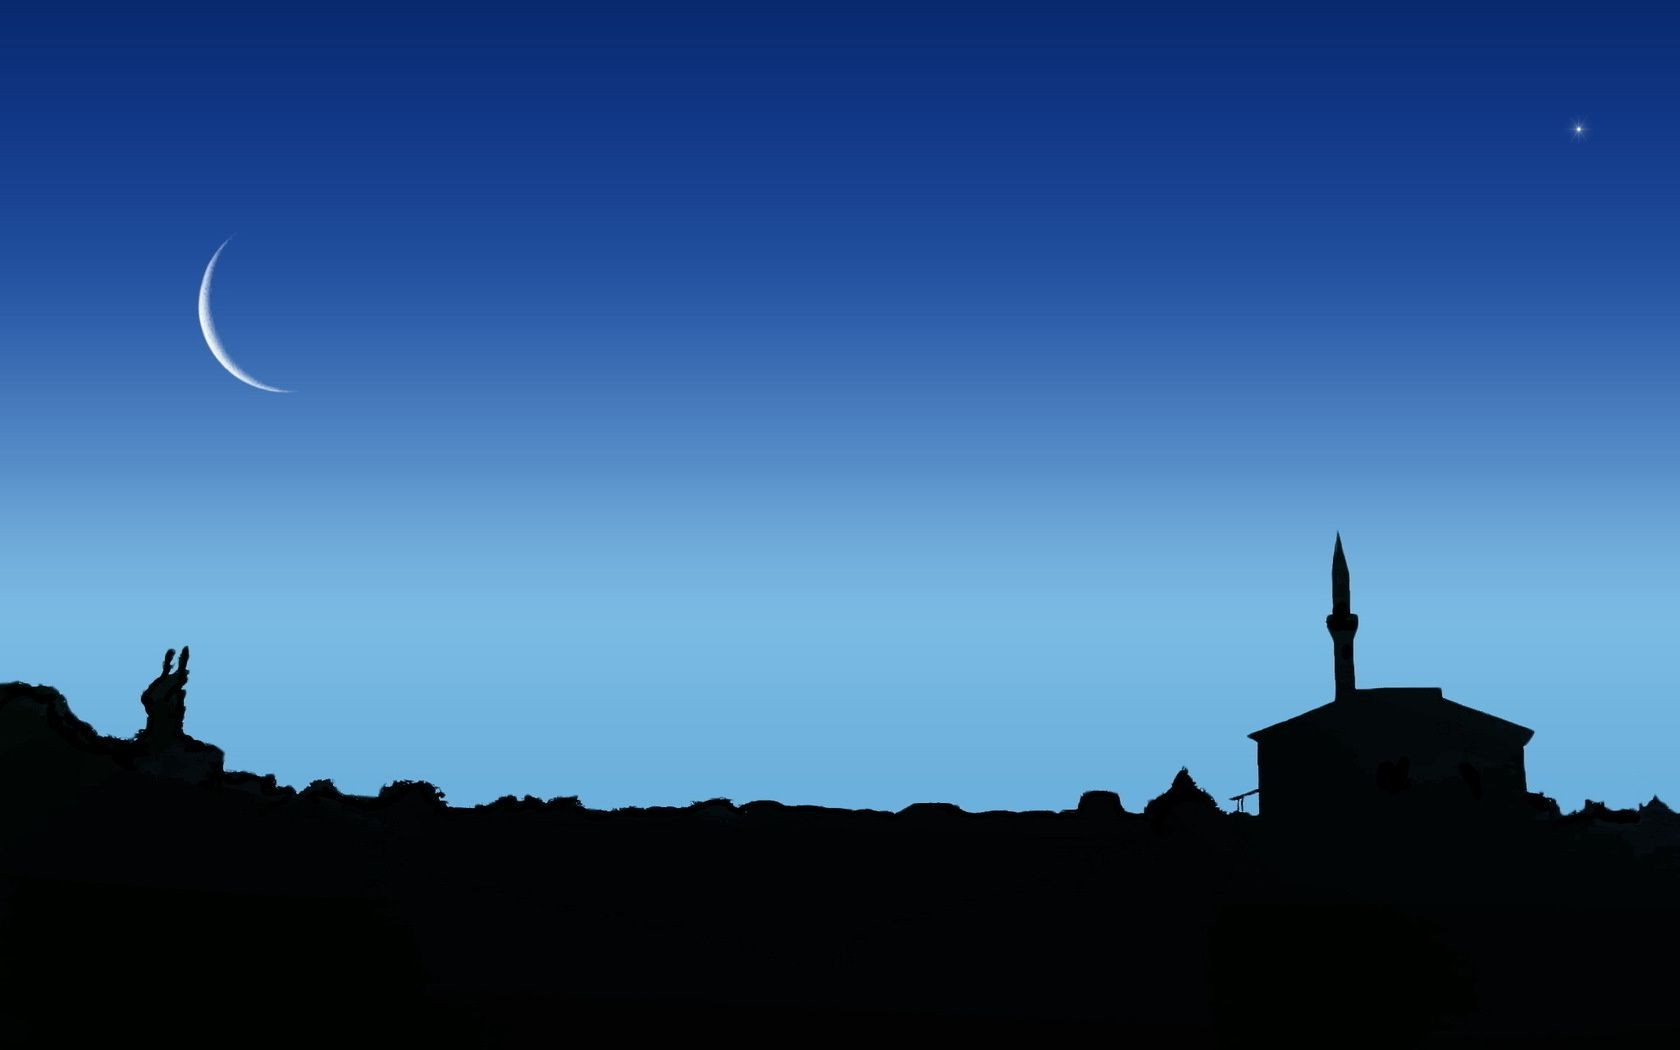 Items Silhouette Sky Moon Sunset Backlit Evening Dawn - Night Sky And Mosque - HD Wallpaper